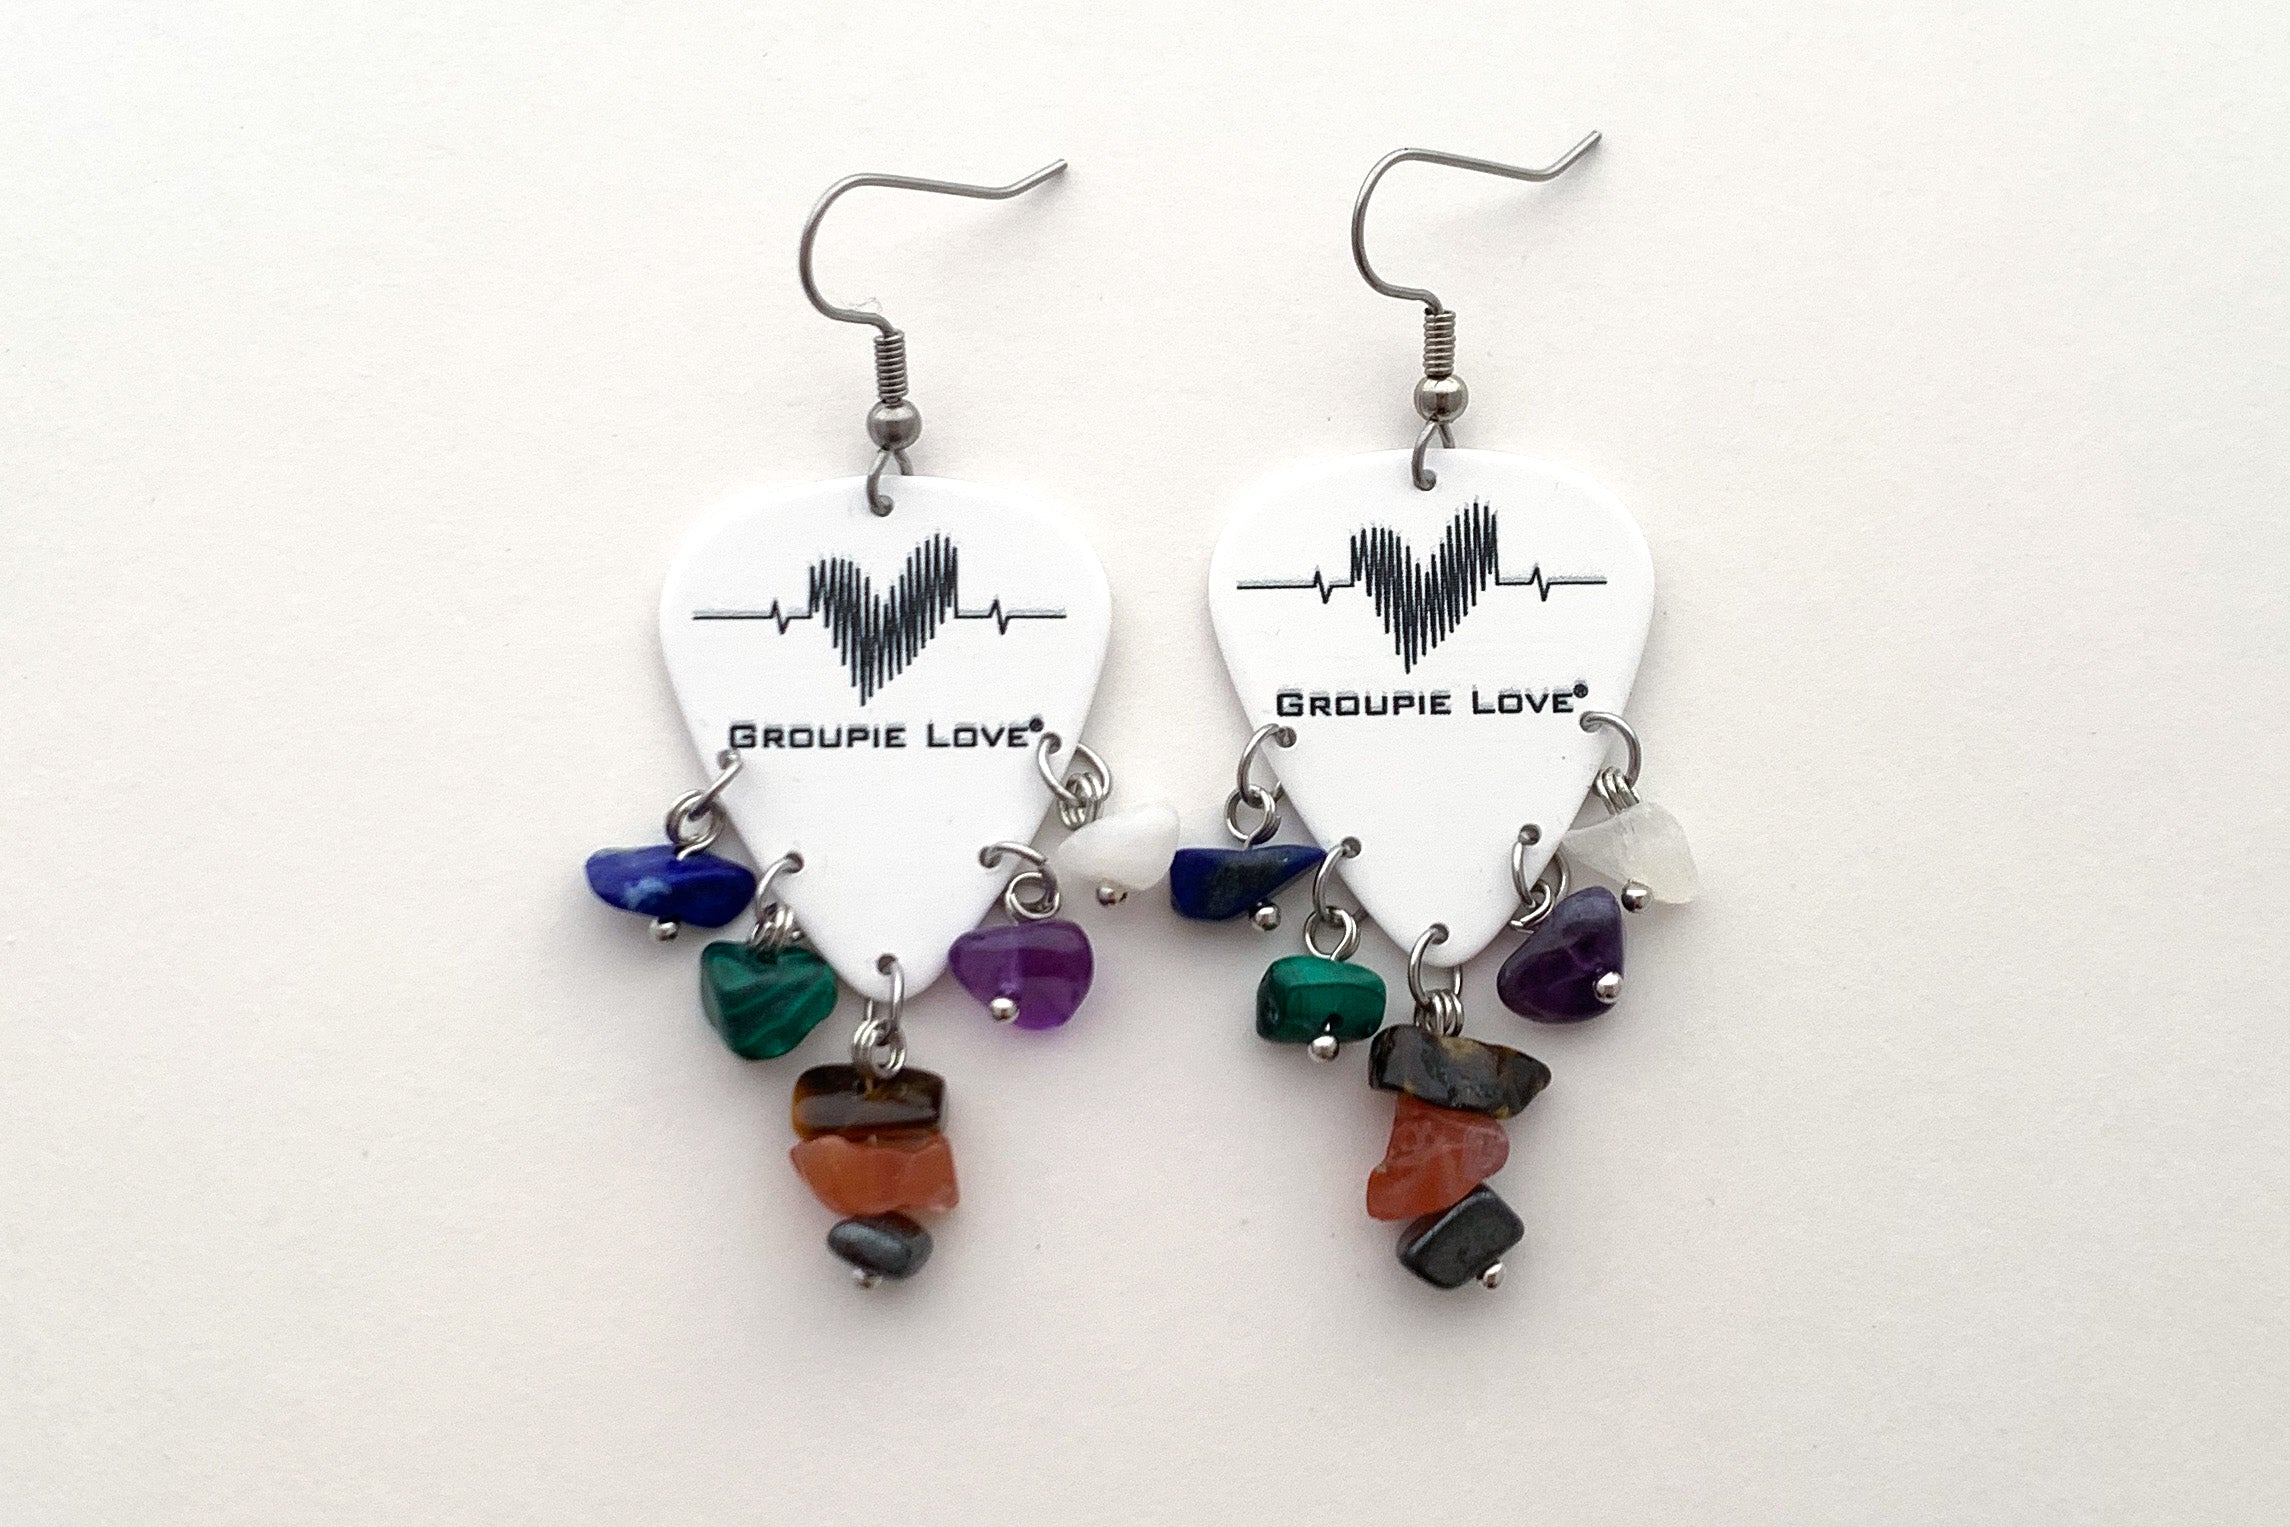 Groupie Love Classic Soundwave Chip Earrings